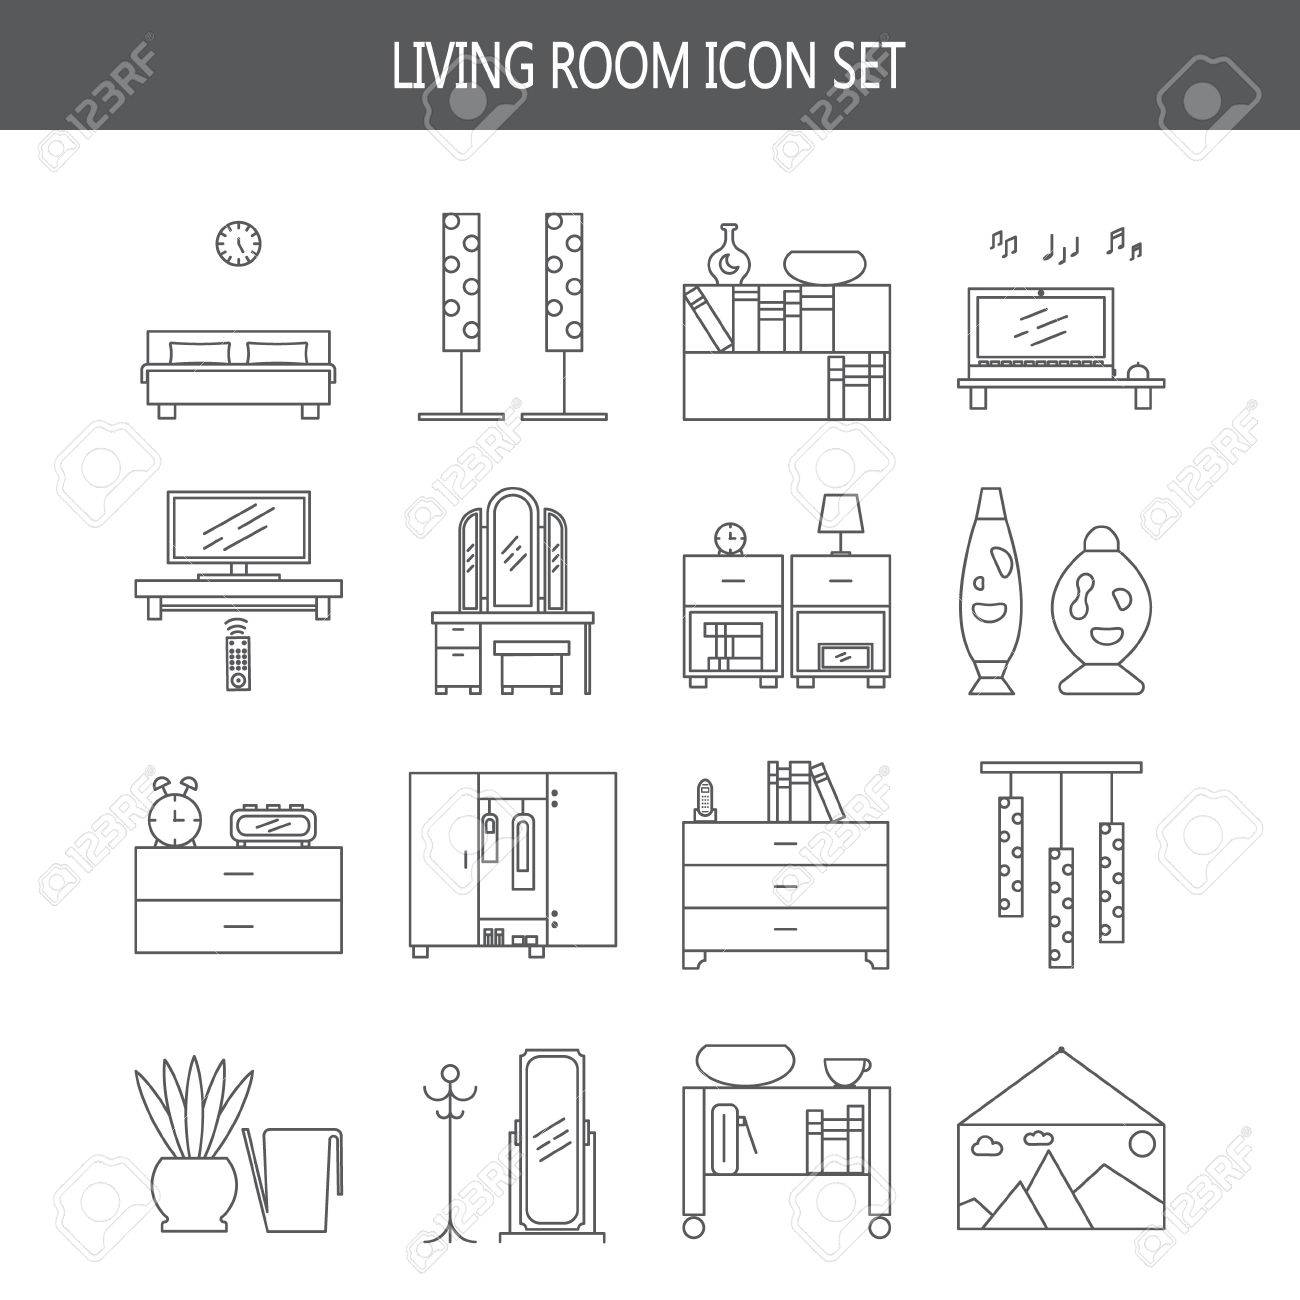 Bedroom icon set collection of high quality outline pictograms collection of high quality outline pictograms of elements for bedrooms interior biocorpaavc Gallery